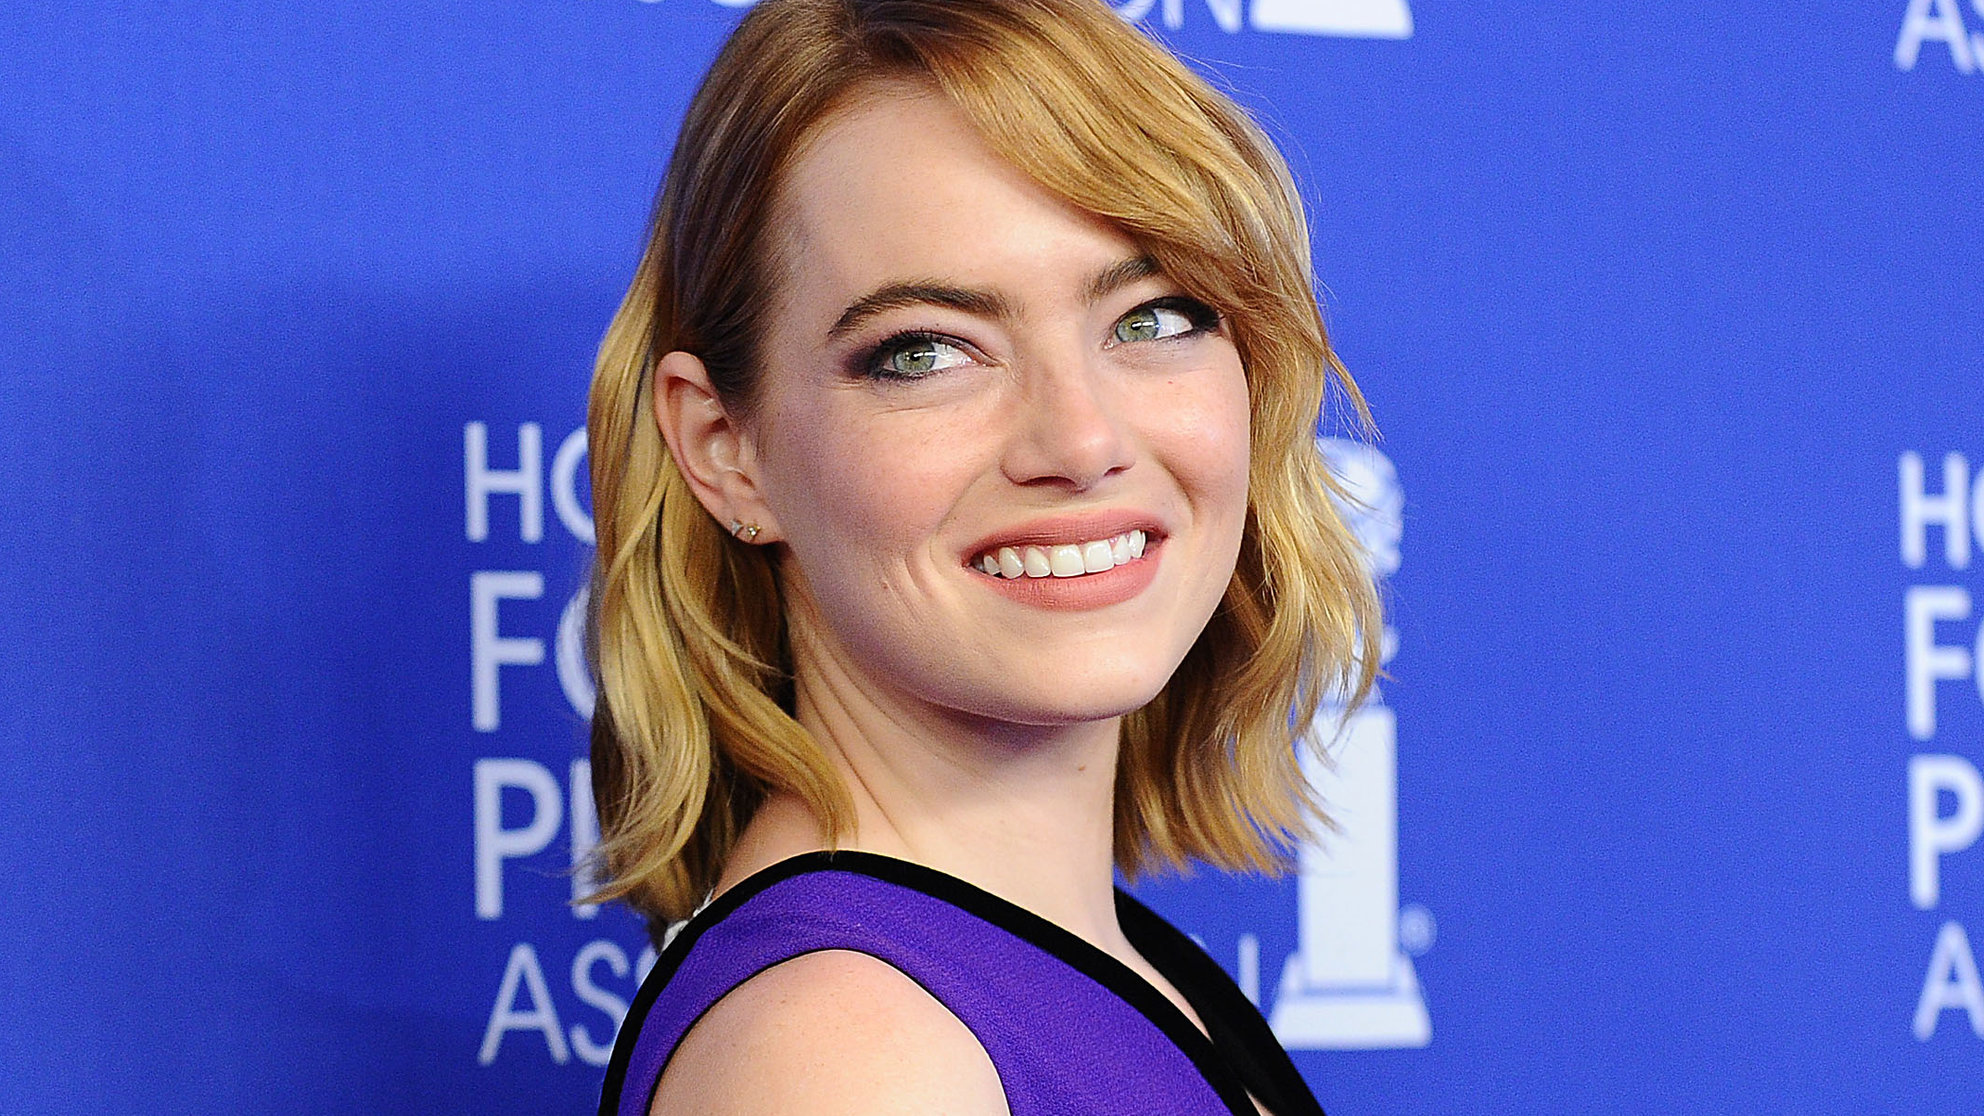 Emma Stone Opens Up About Growing Up With Anxiety and Struggling With Fame: 'It Terrified Me'